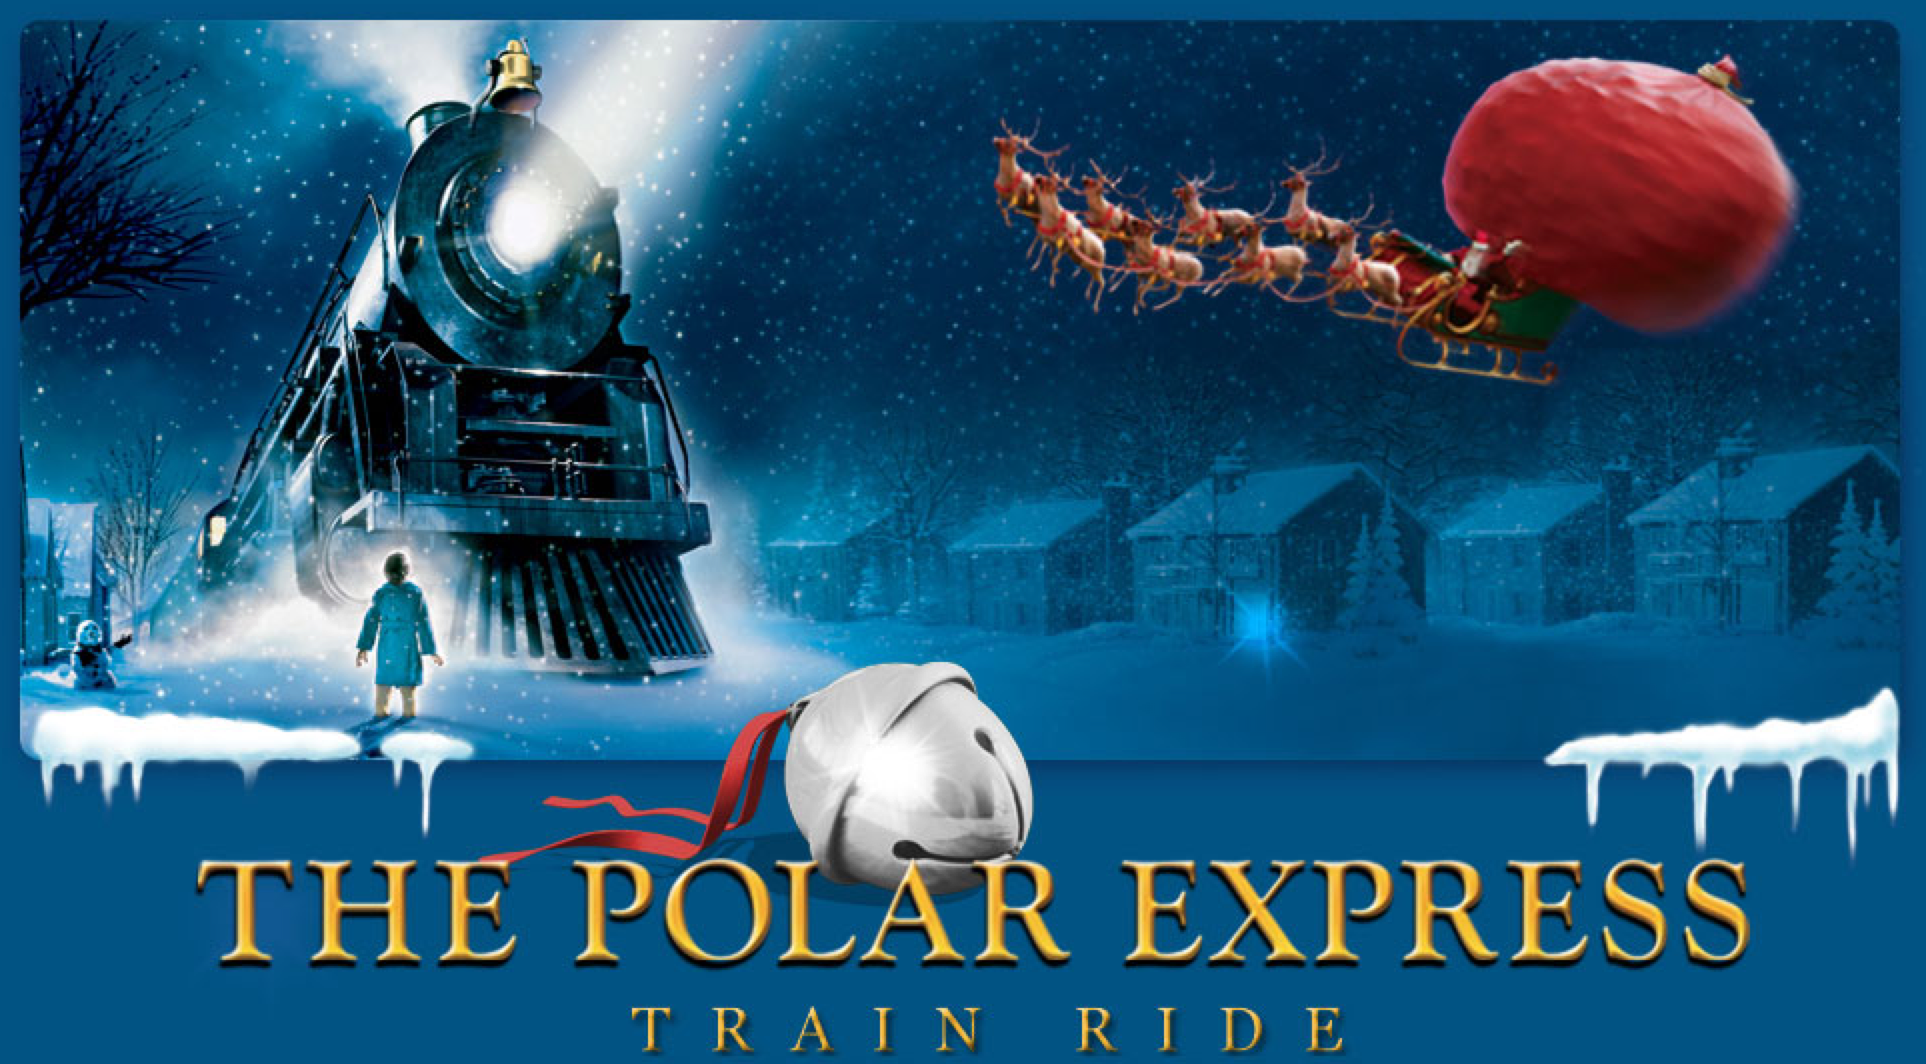 the polar express train ride event locations